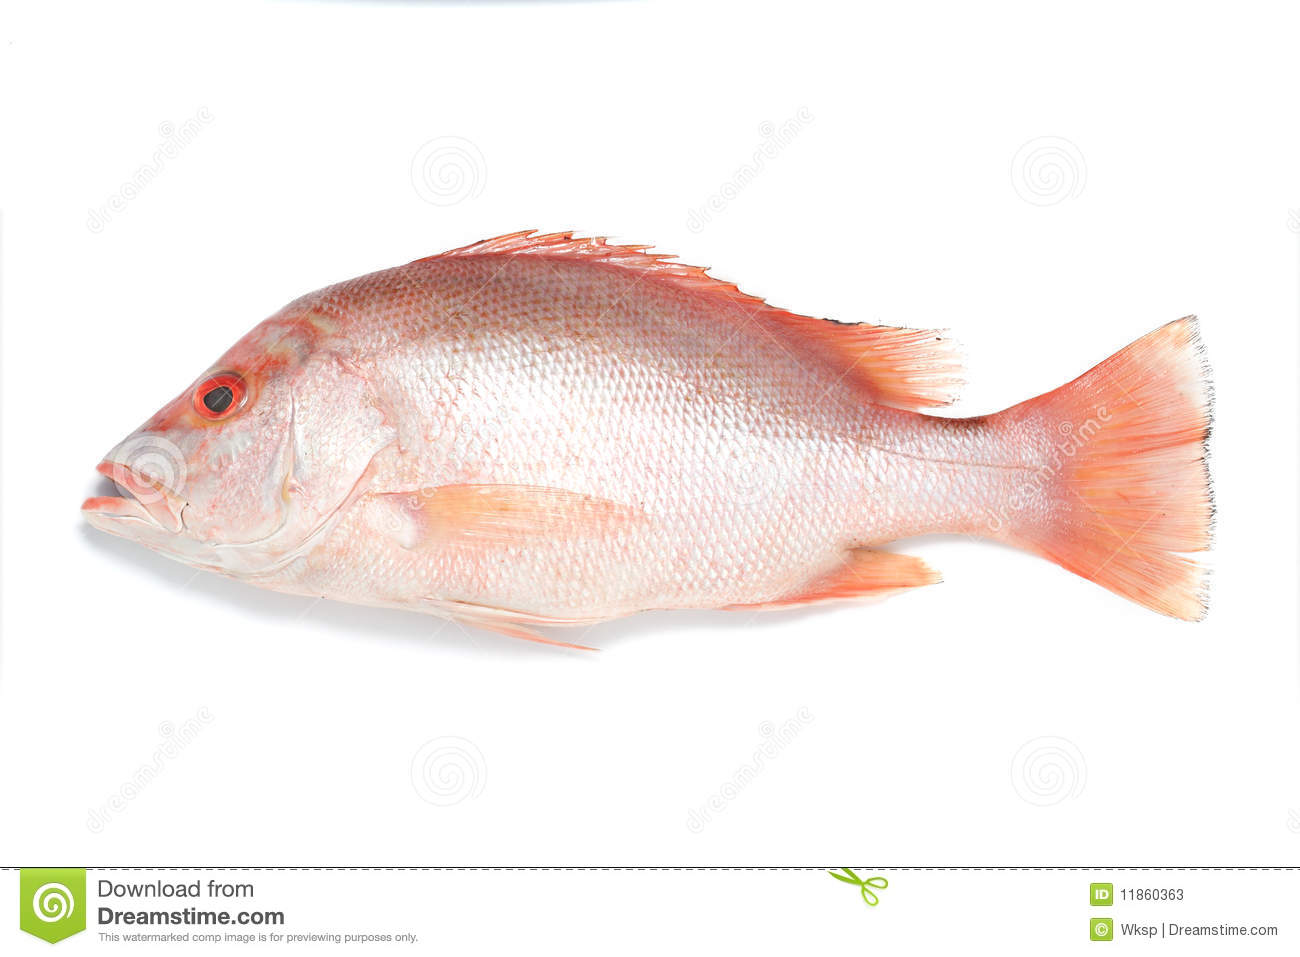 Red snapper fish stock image image of fish fresh for Red snapper fish